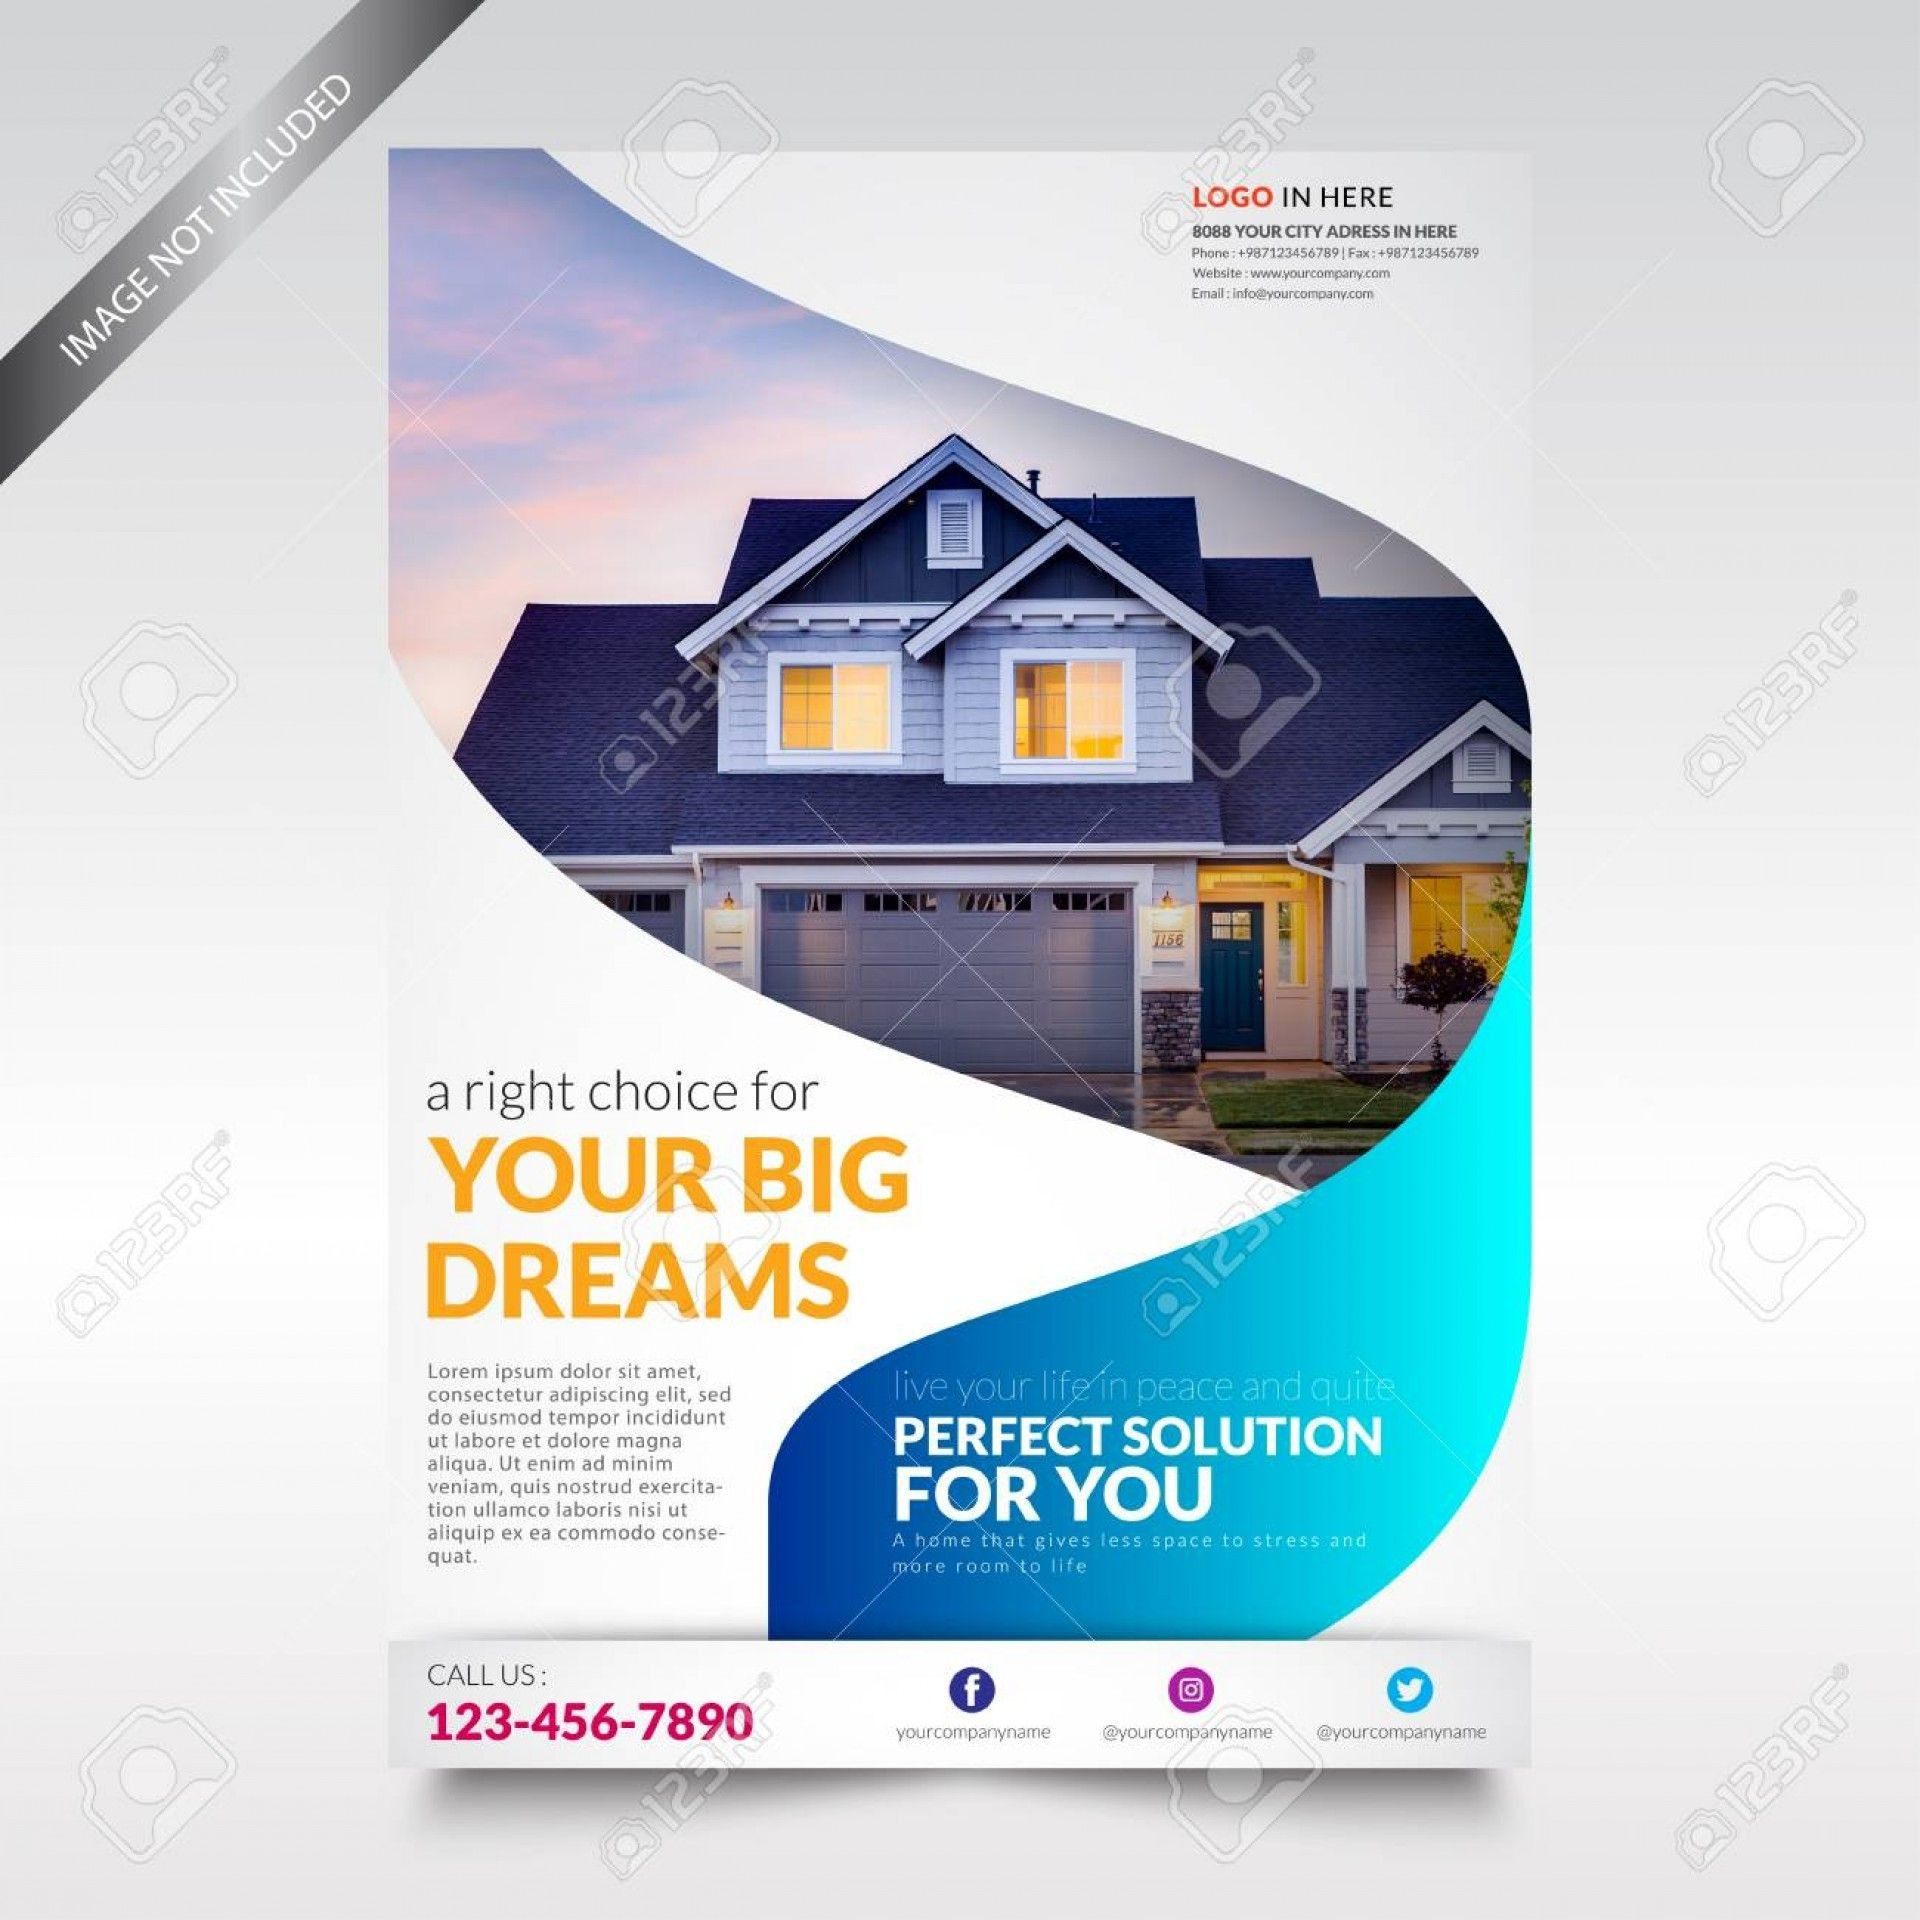 002 Awful Free Flyer Design Template Image  Templates Online Download Psd1920